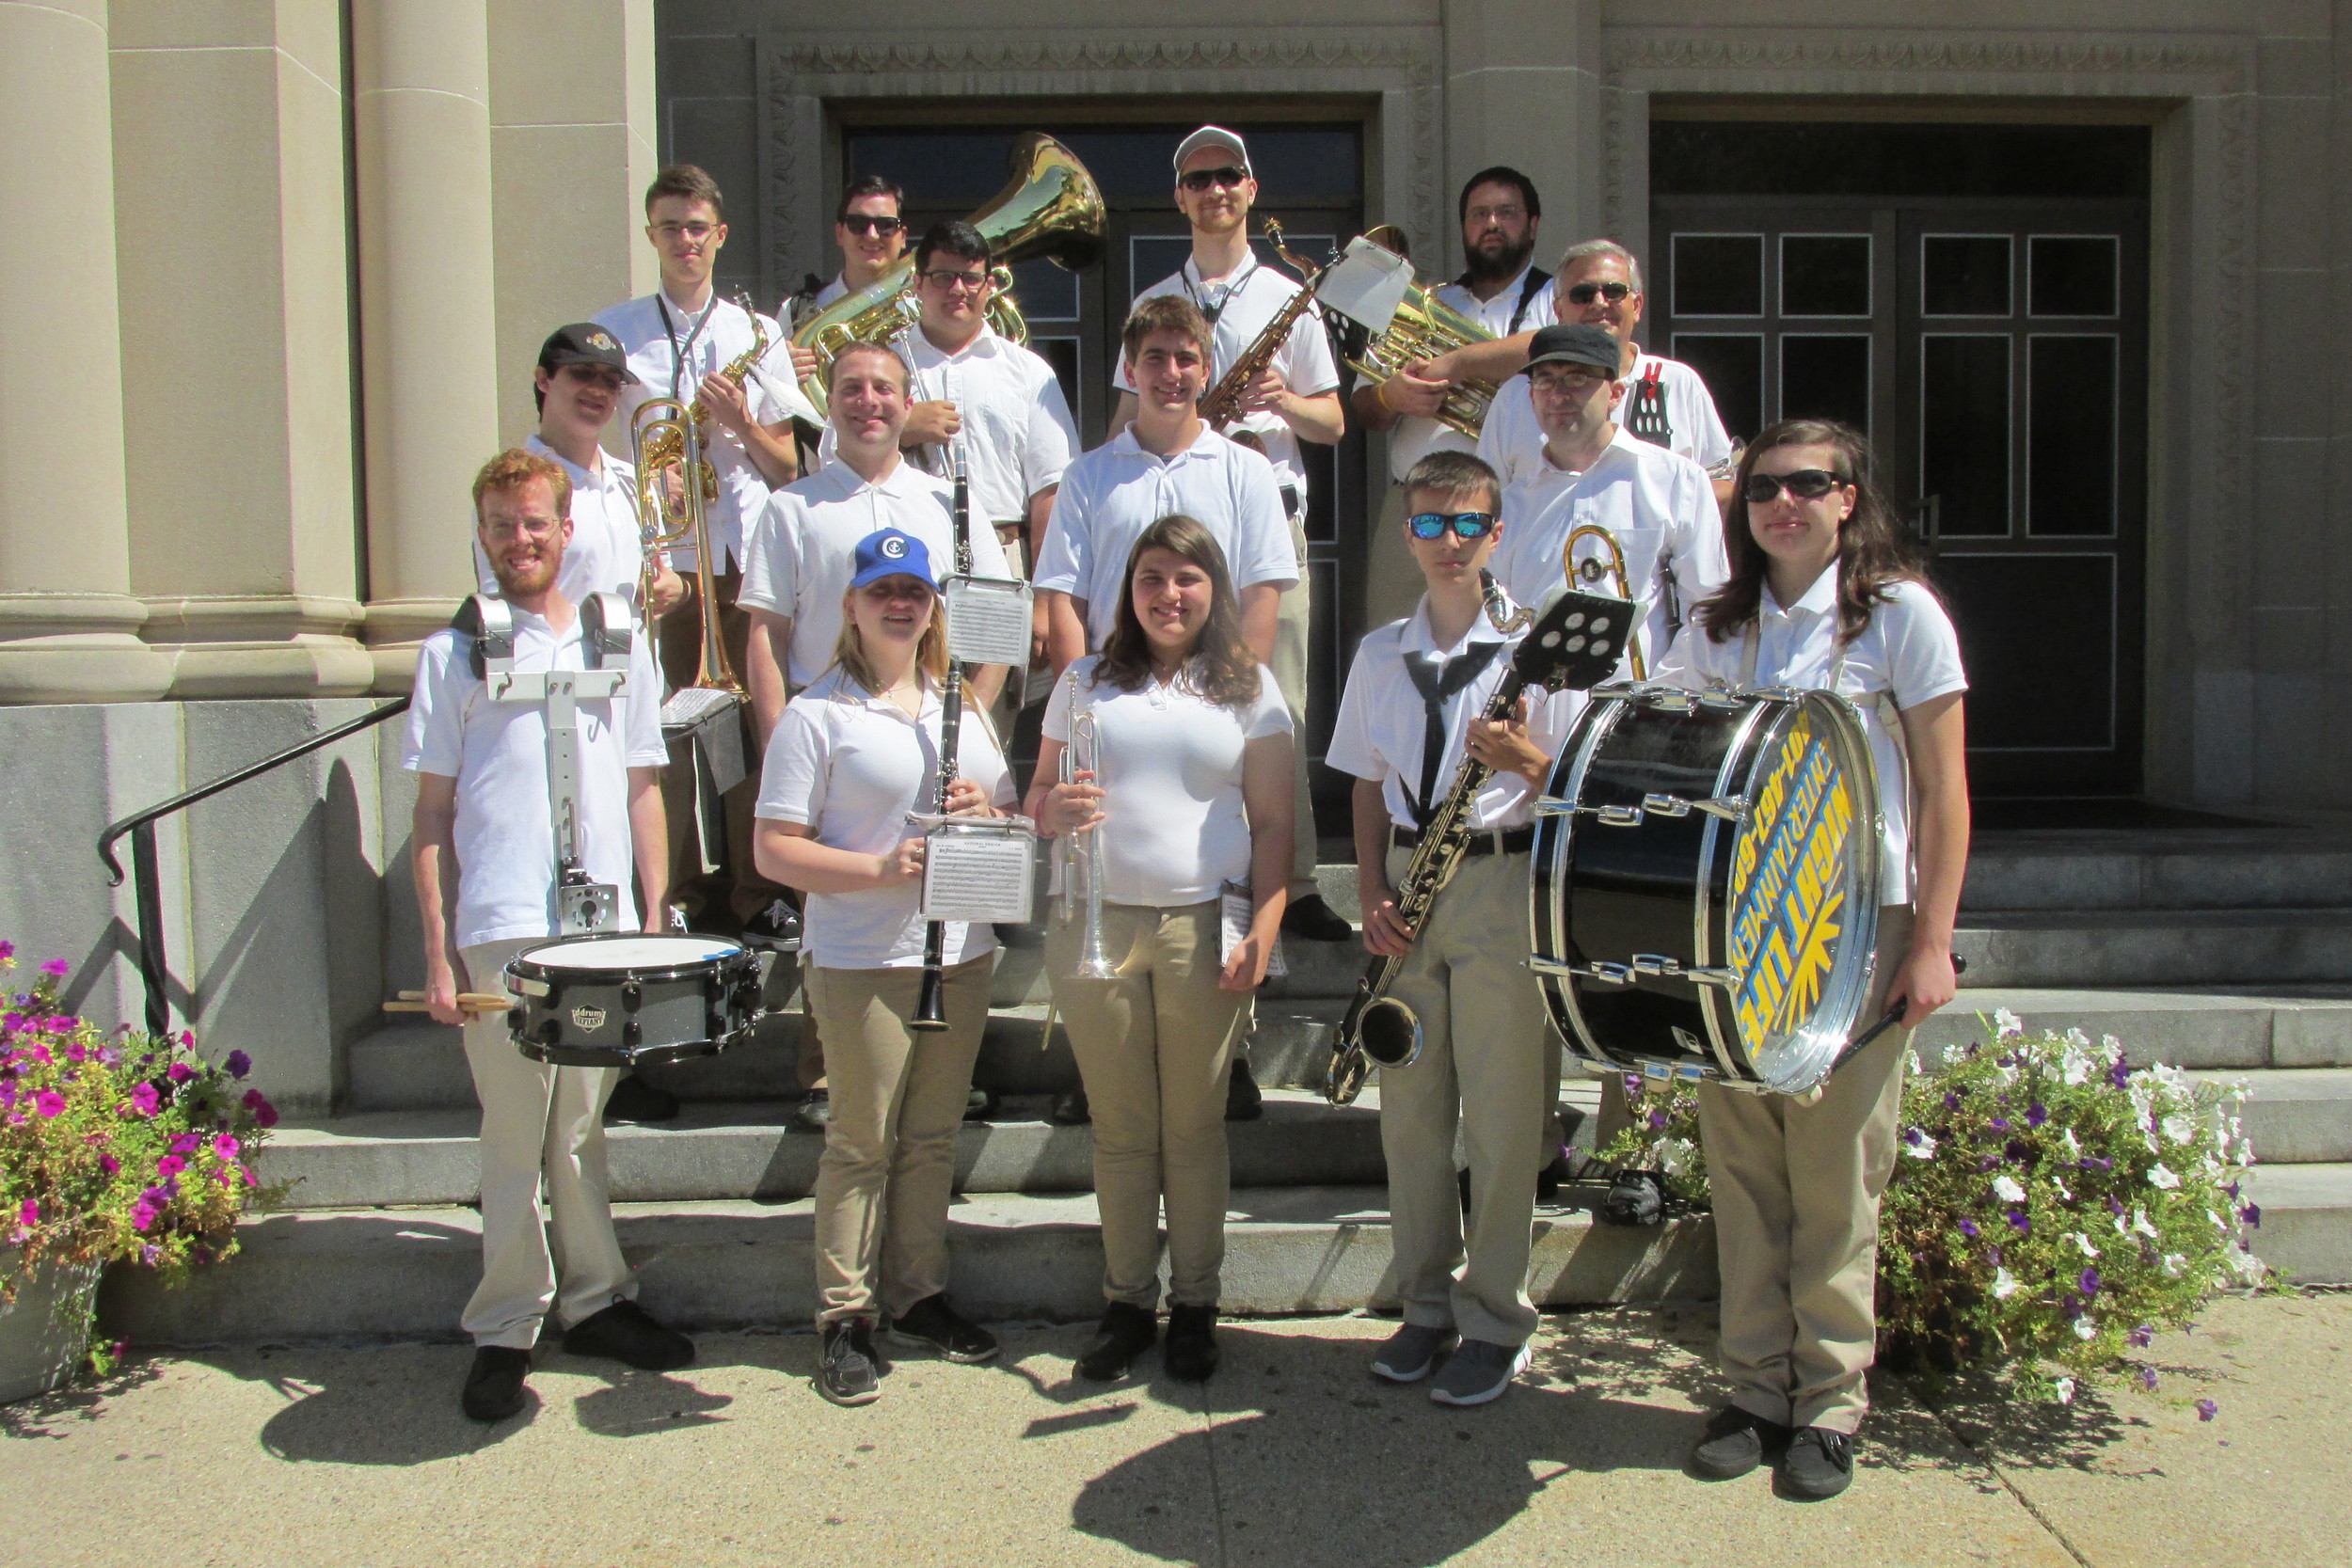 MIGHTY MUSICIANS: The Rhode Island Veterans Band helped make Sunday's procession and festival a huge hit with people by way of some excellent music.